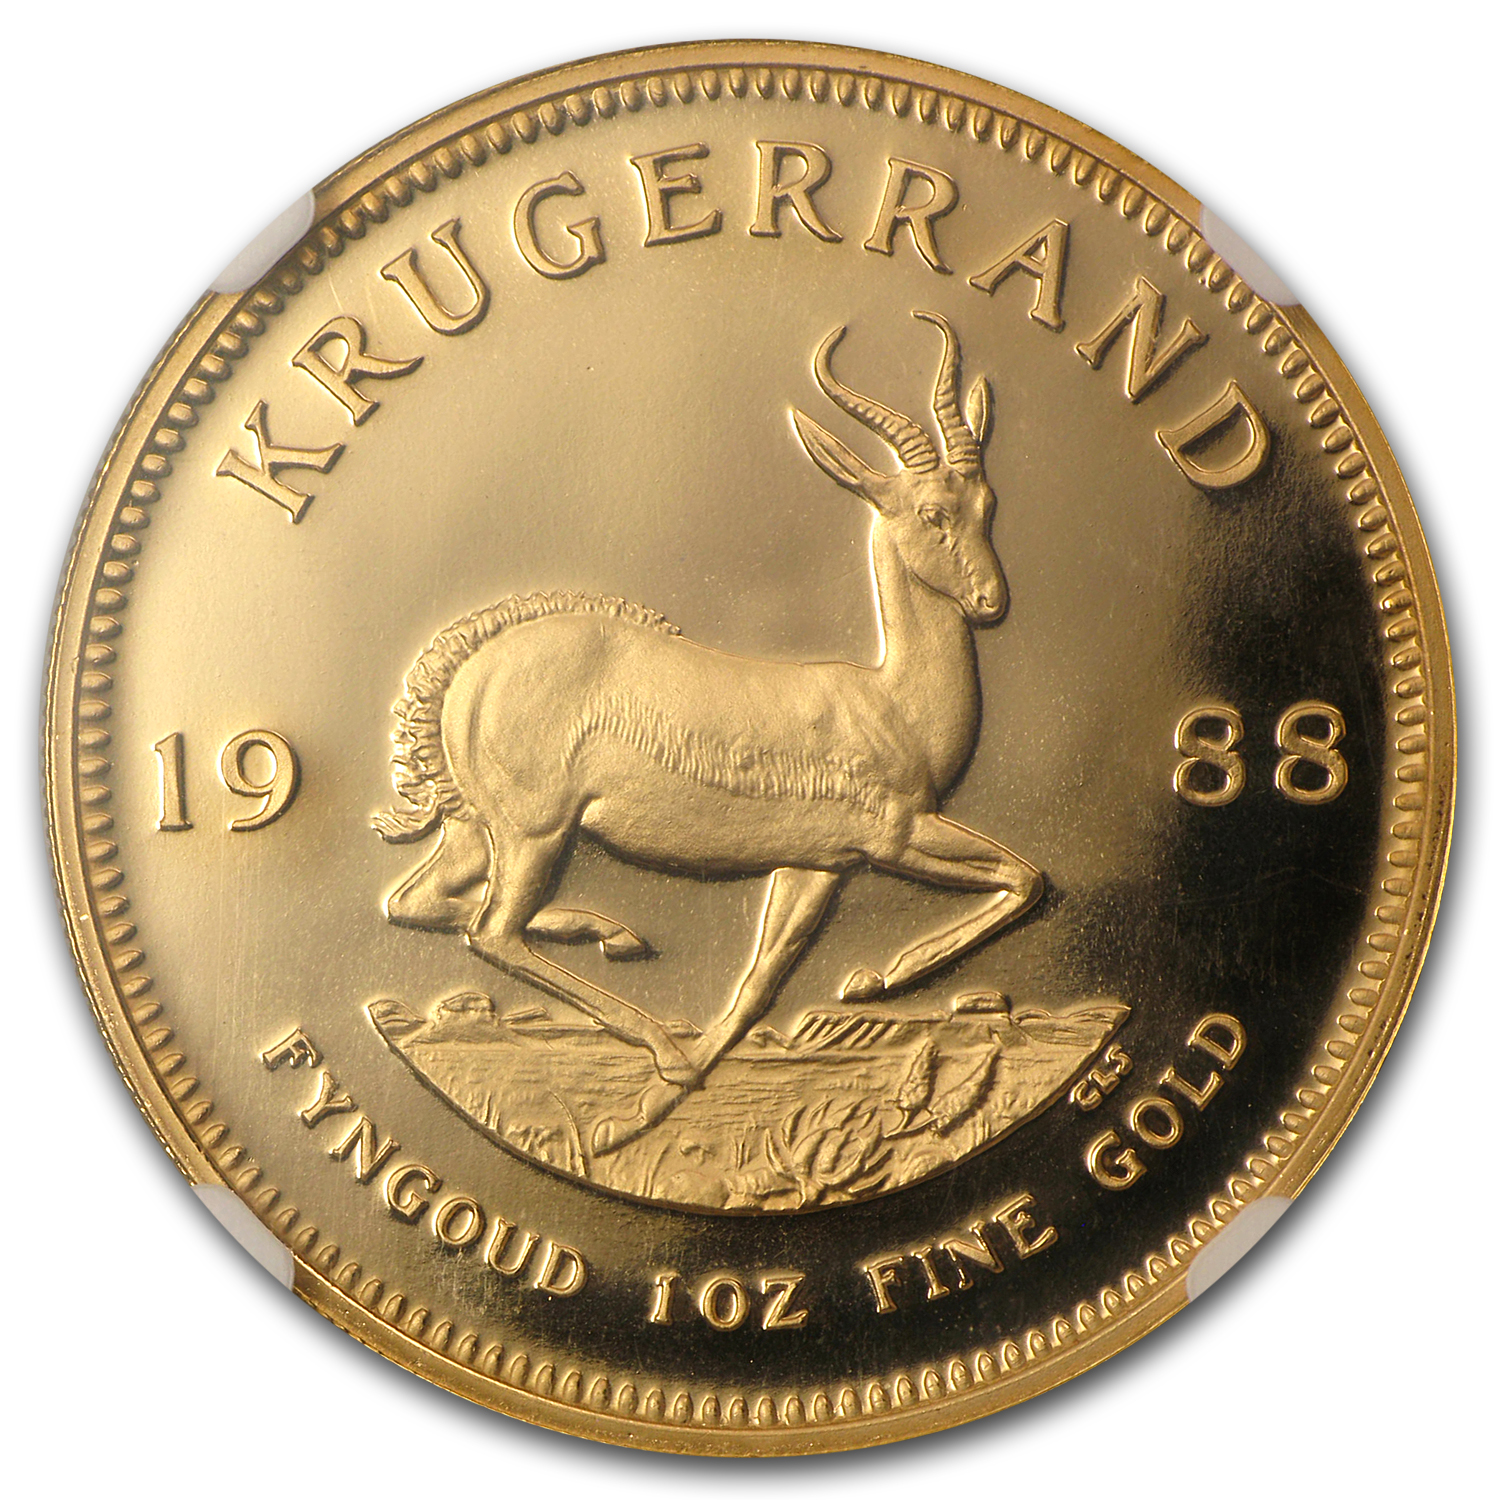 1988 South Africa 1 oz Gold Krugerrand PF-69 NGC